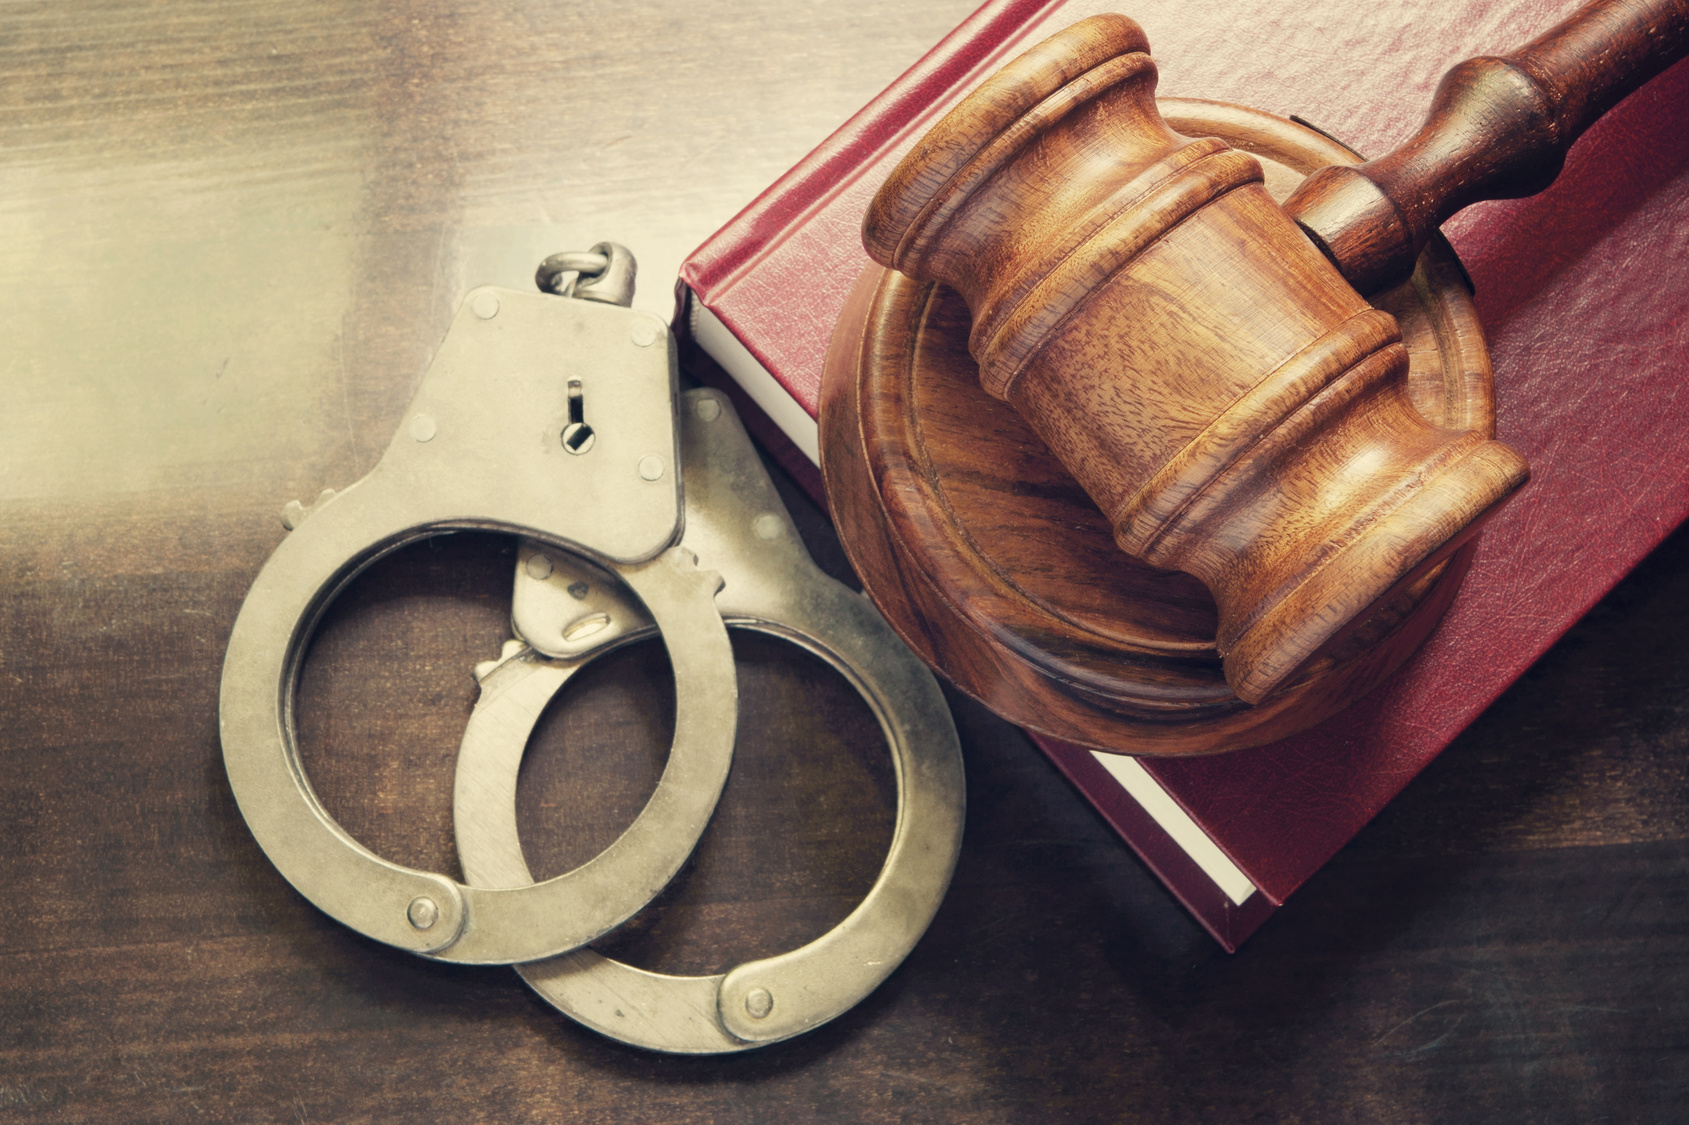 What are the Probable Reasons for Issuing a Bench Warrant?